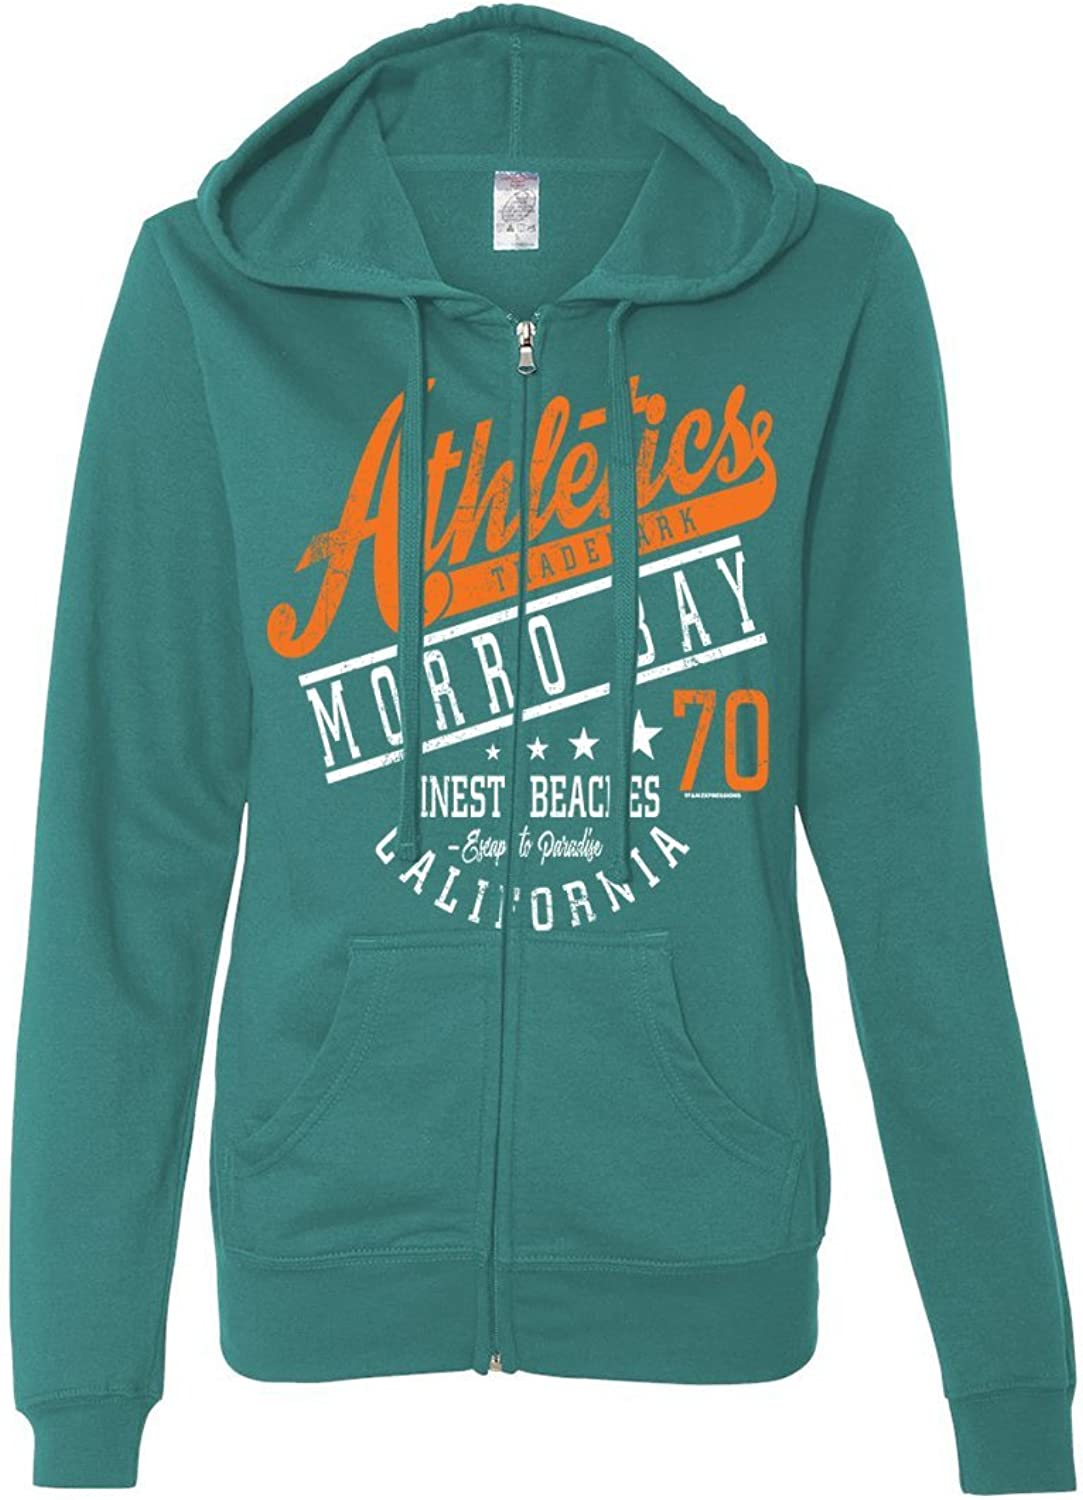 Dolphin Shirt Co Morro Bay Athletics Ladies Lightweight Fitted ZipUp Hoodie